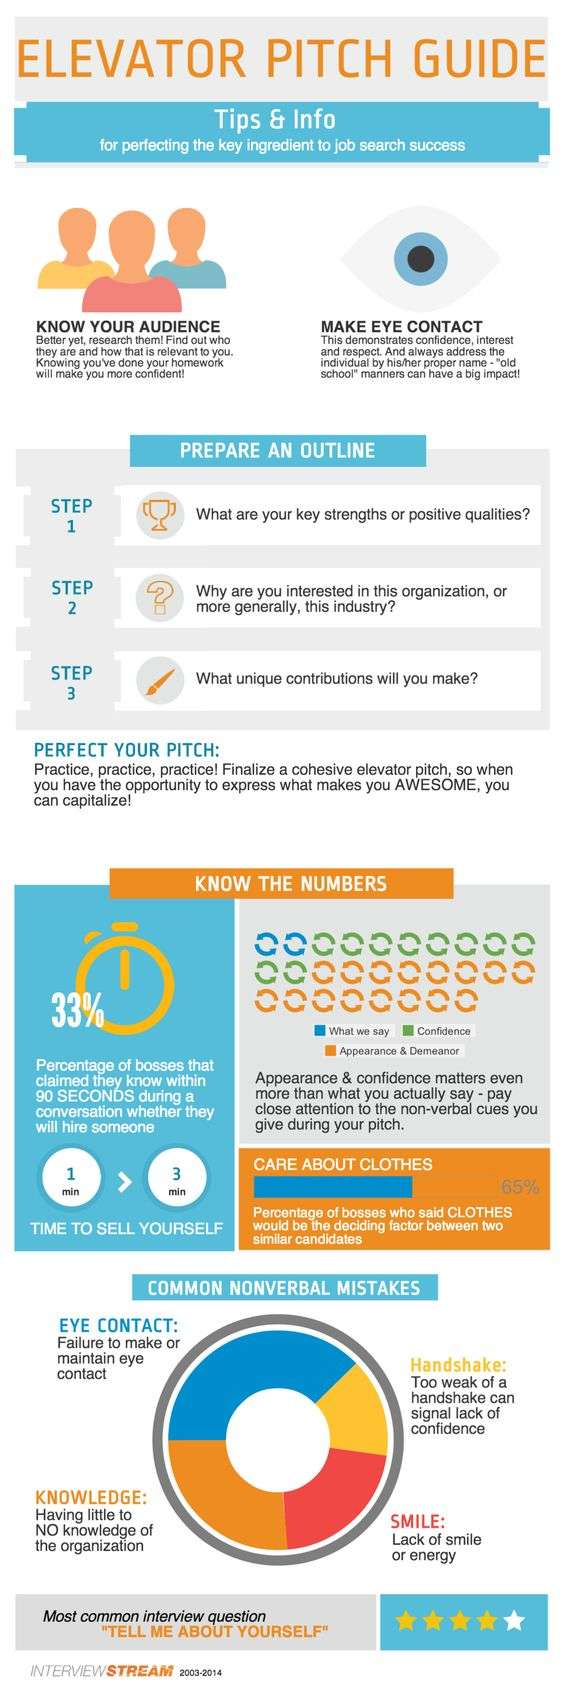 Elevator Pitch Guide